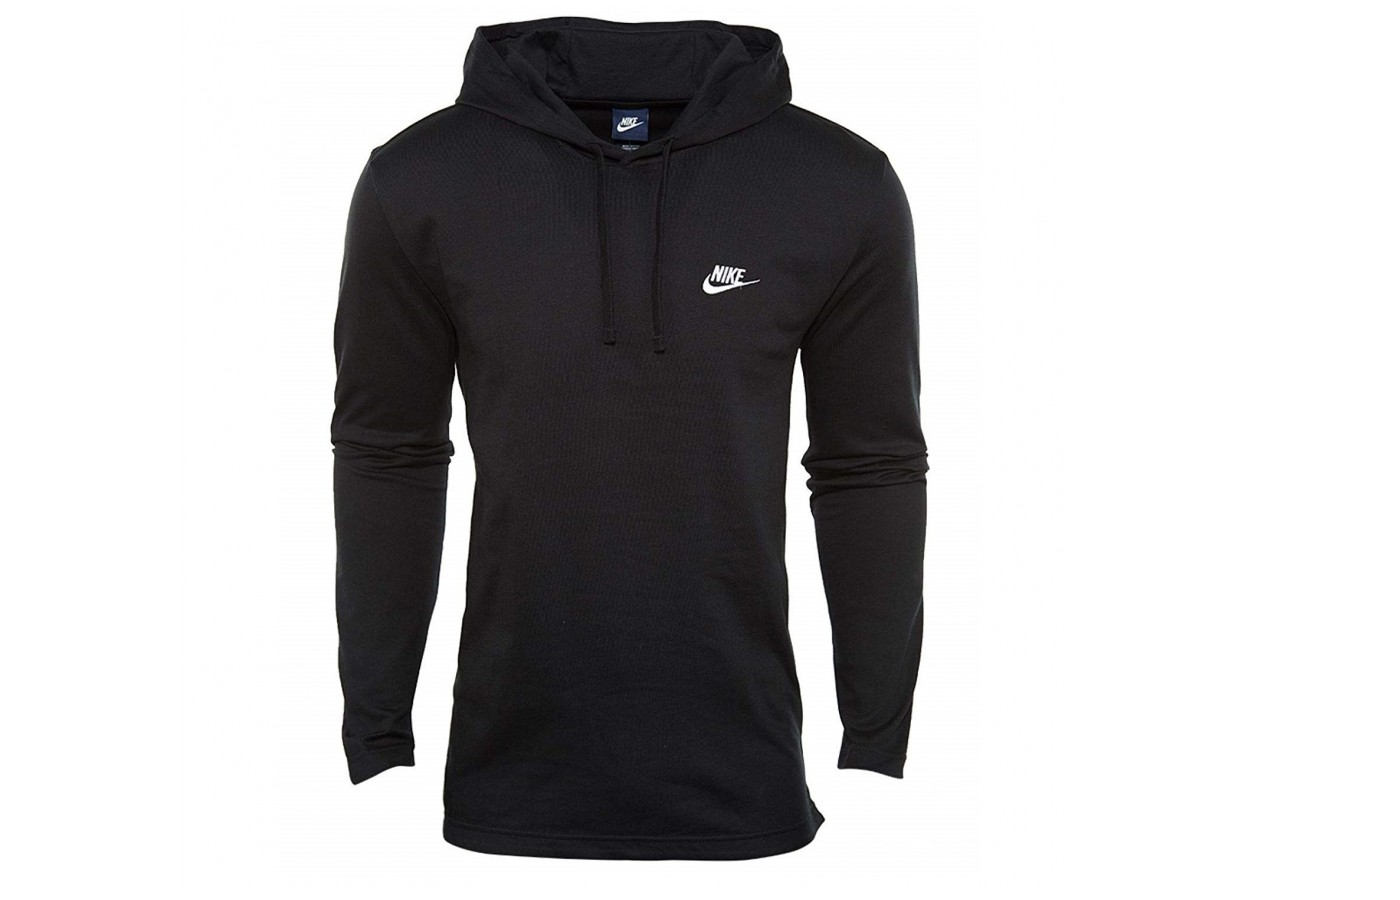 The Nike Club Hoodie is fleece lined in order to keep the wearer warm even in cooler weather.